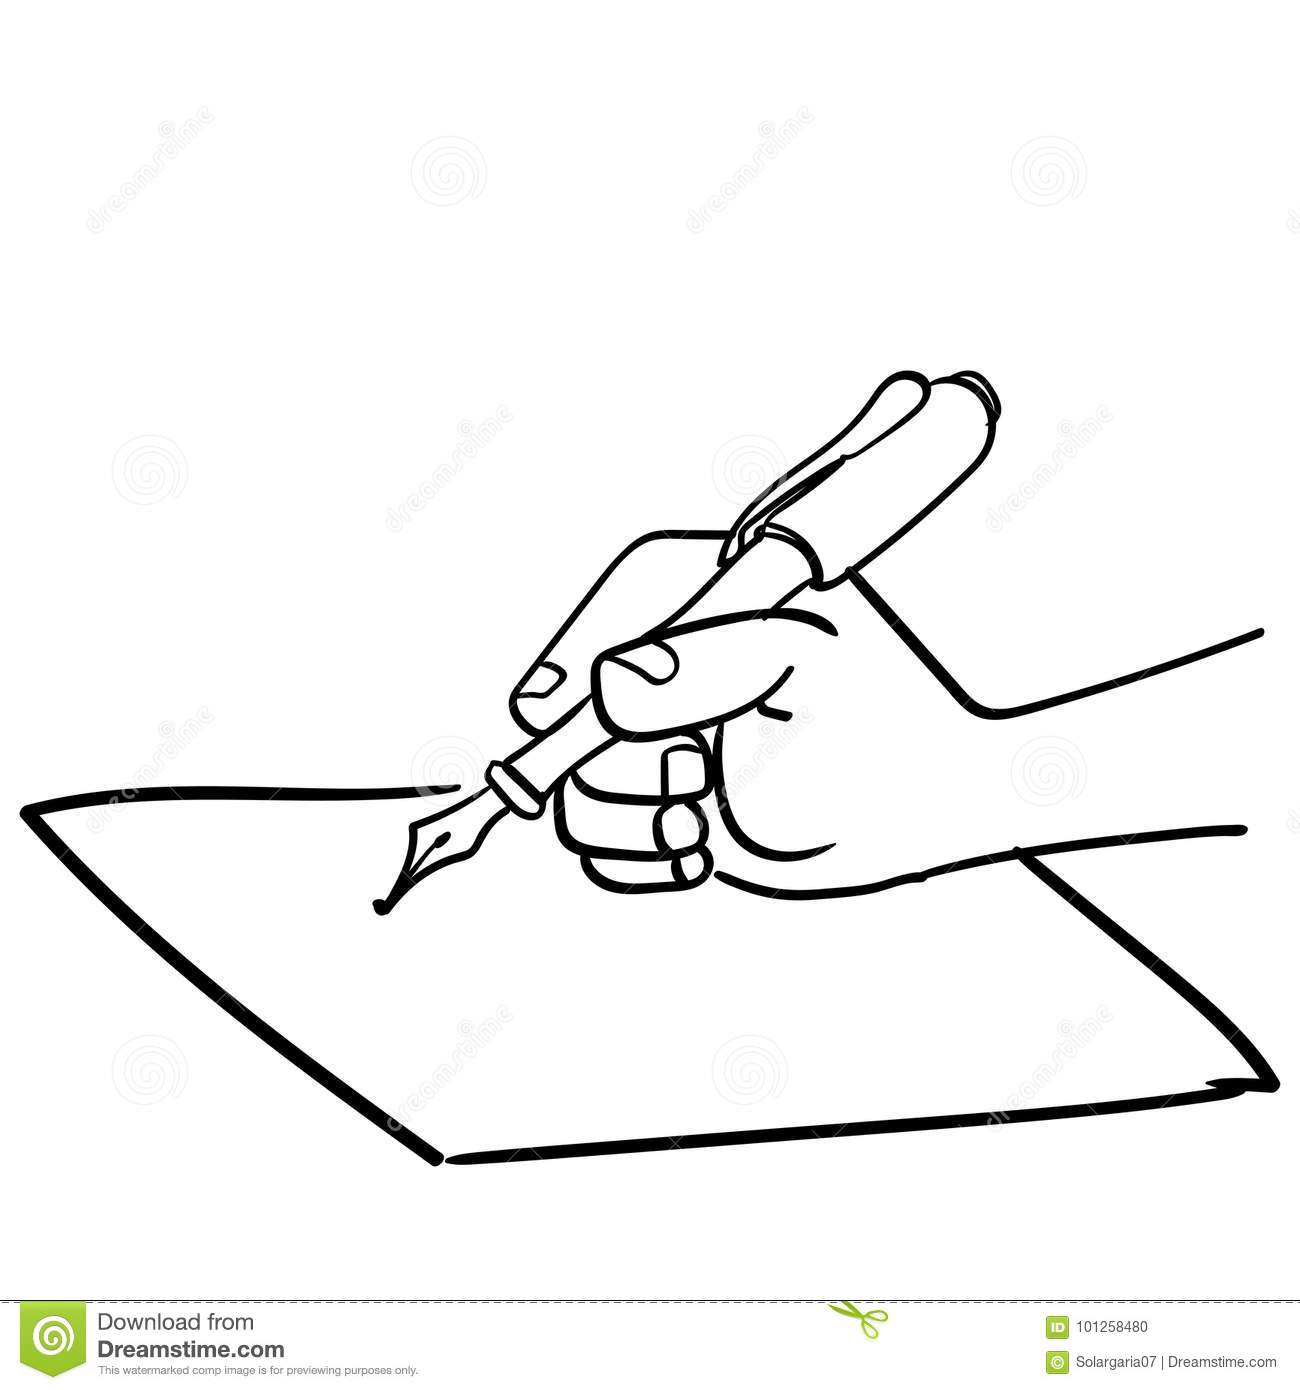 Cartoon Hand Writing With Pen Vector Drawn Stock Vector